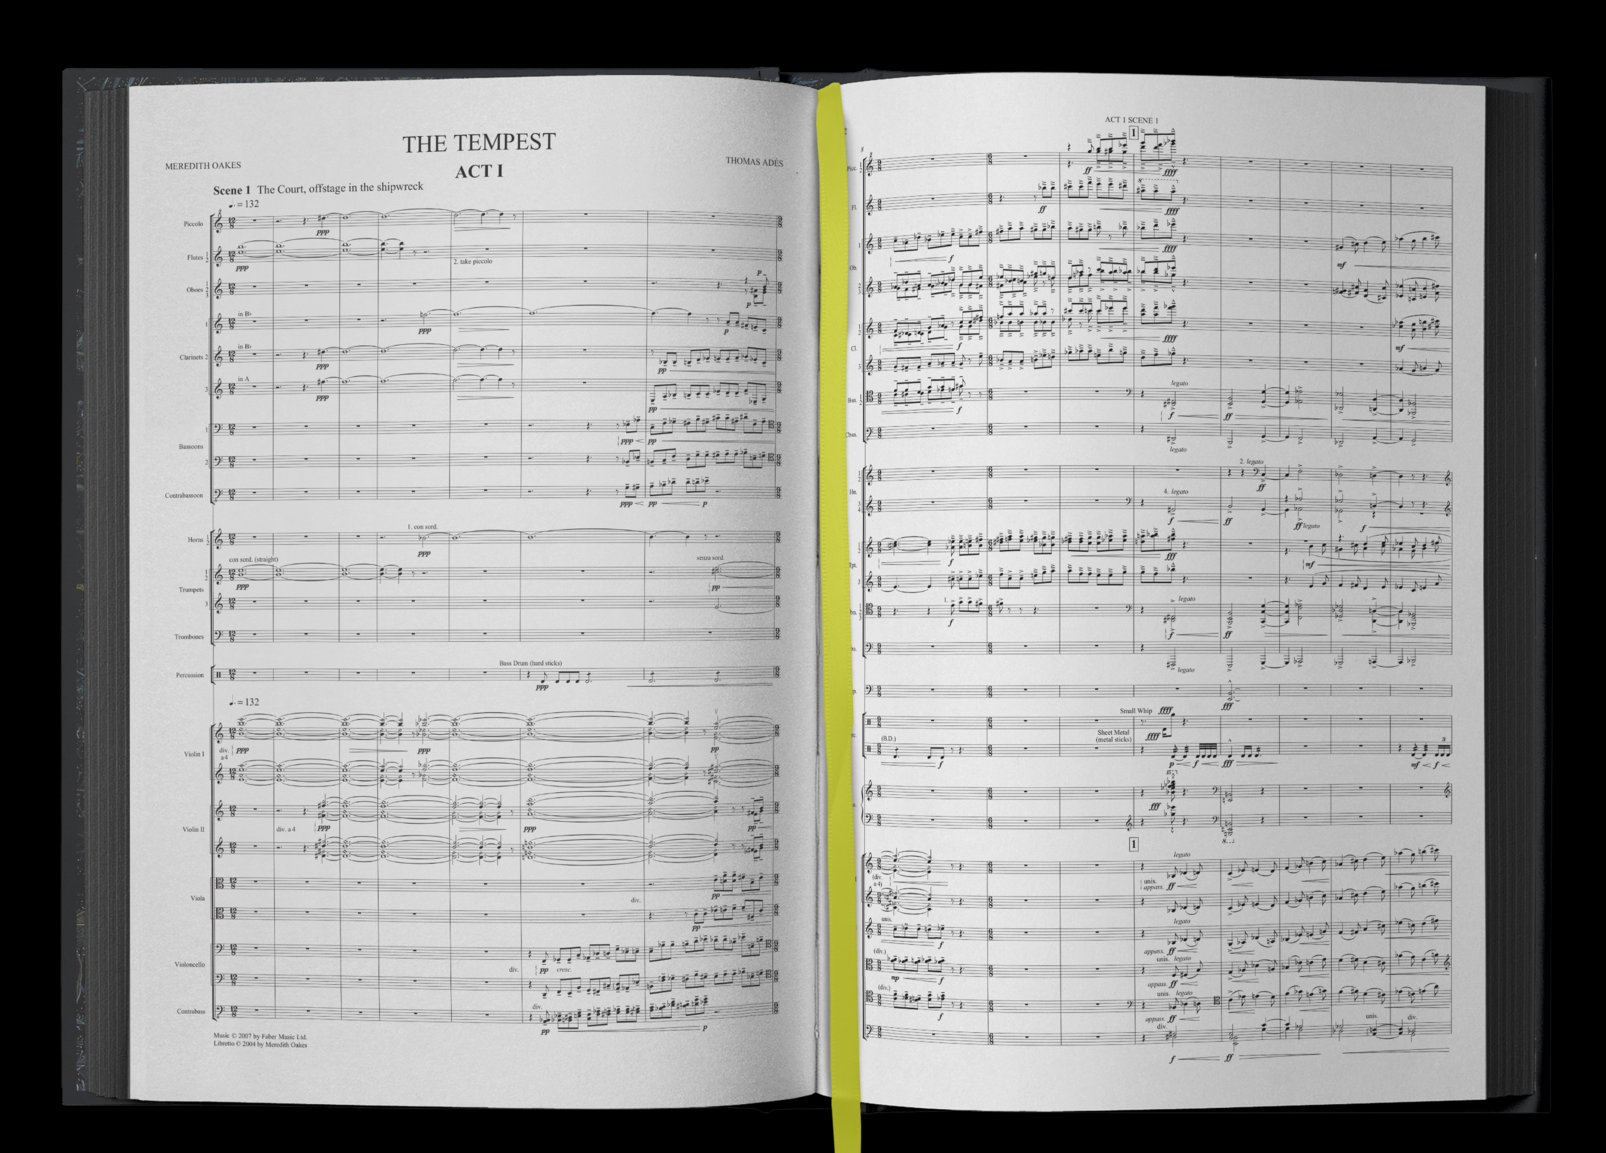 beautifully presented full orchestral score -